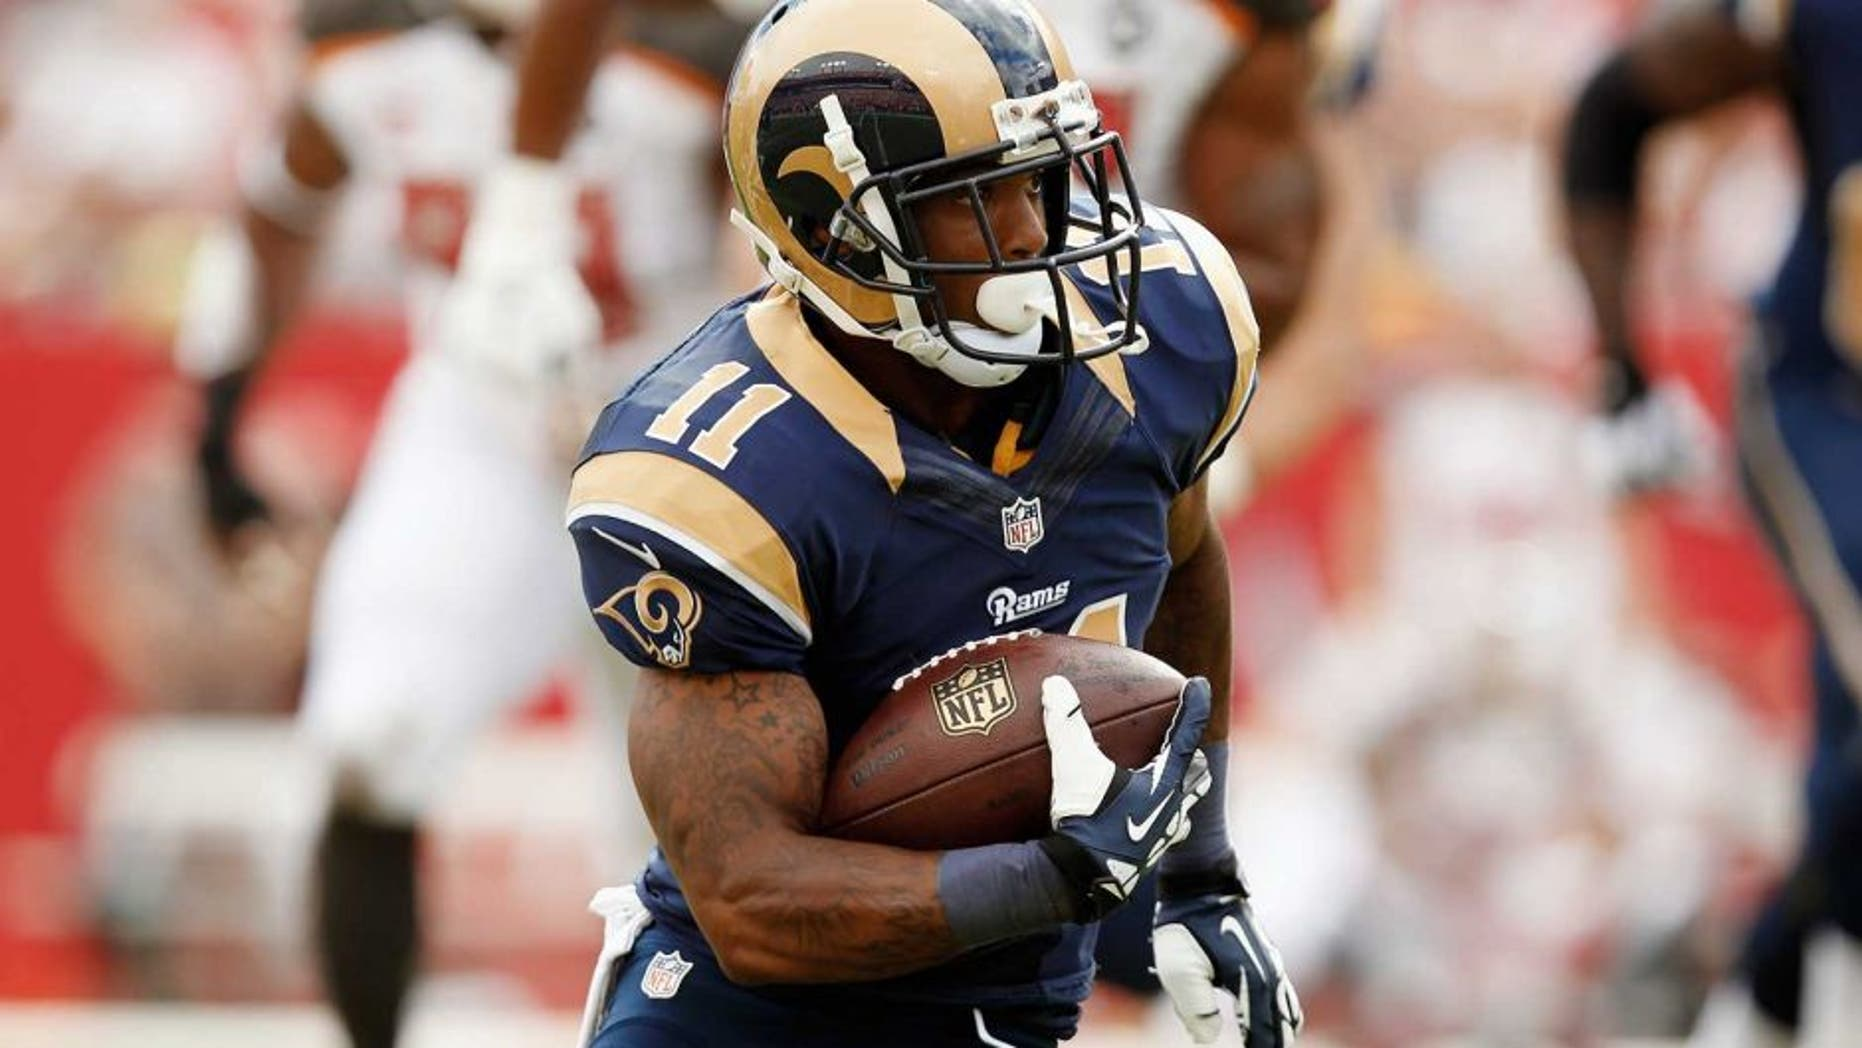 TAMPA, FL - SEPTEMBER 14: Wide receiver Tavon Austin #11 of the St. Louis Rams runs with the ball against the Tampa Bay Buccaneers at Raymond James Stadium on September 14, 2014 in Tampa, Florida. (Photo by Scott Iskowitz/Getty Images)